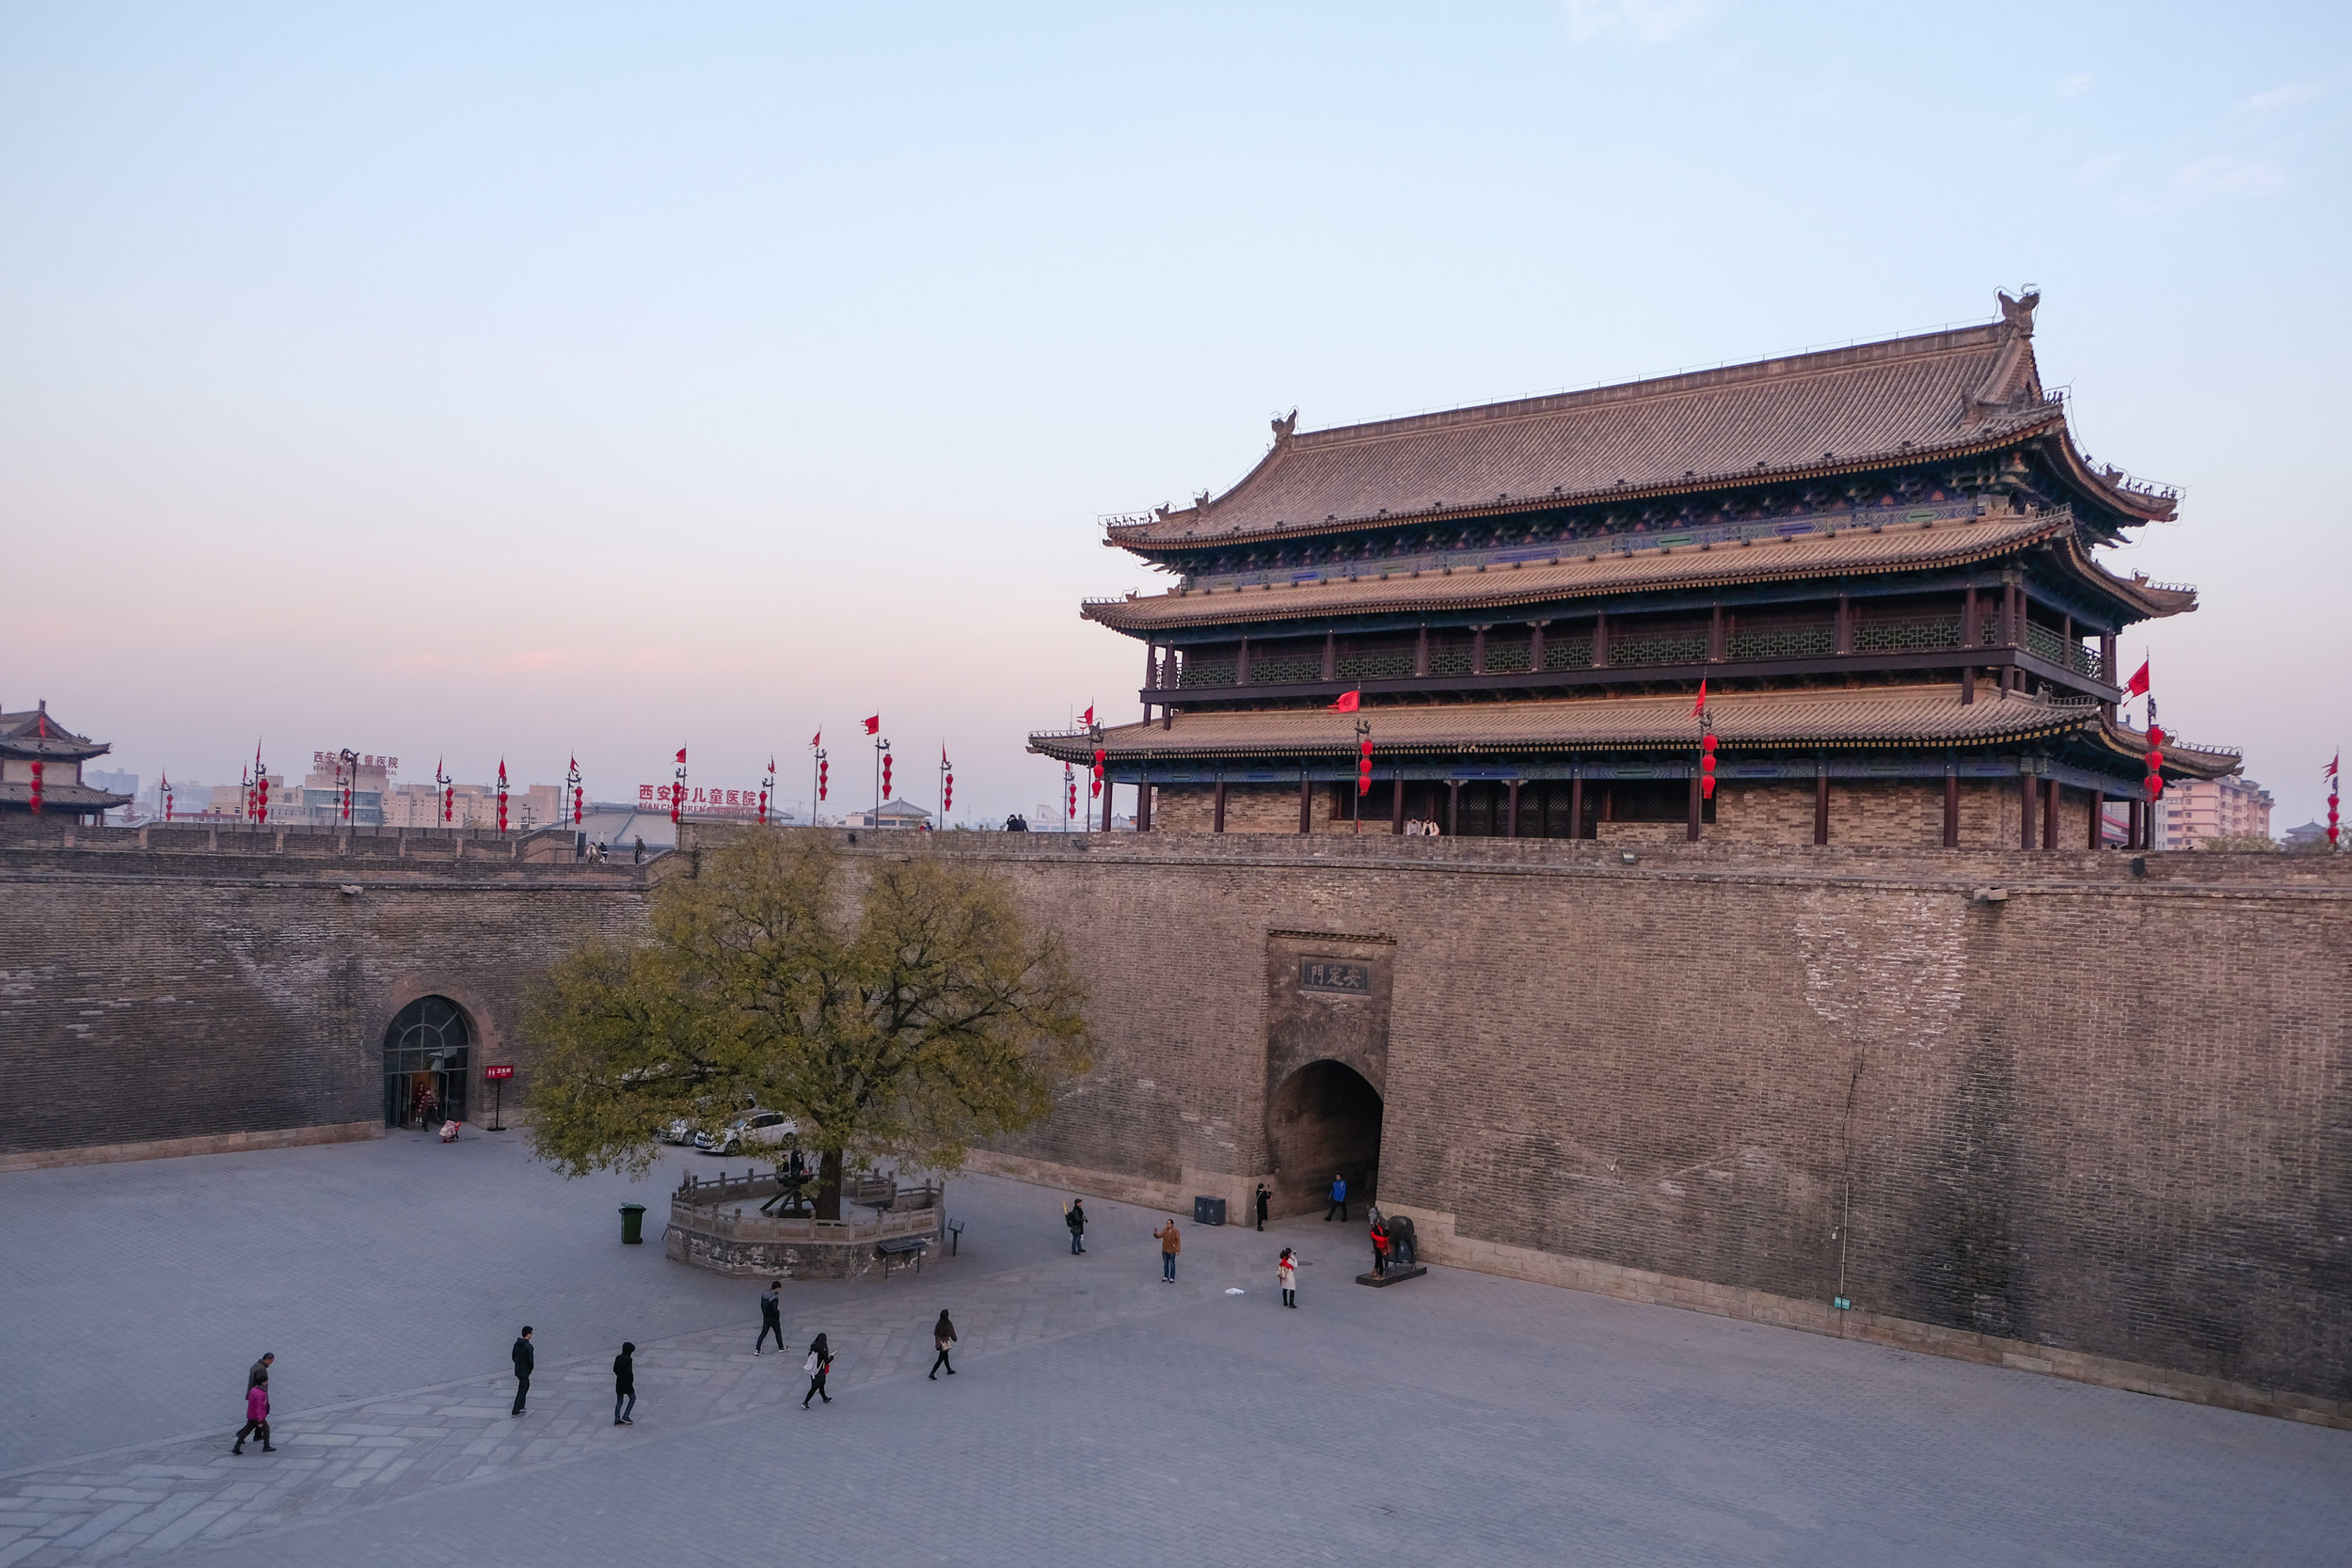 R&R Guide to Xi'an - January 30th, 2018